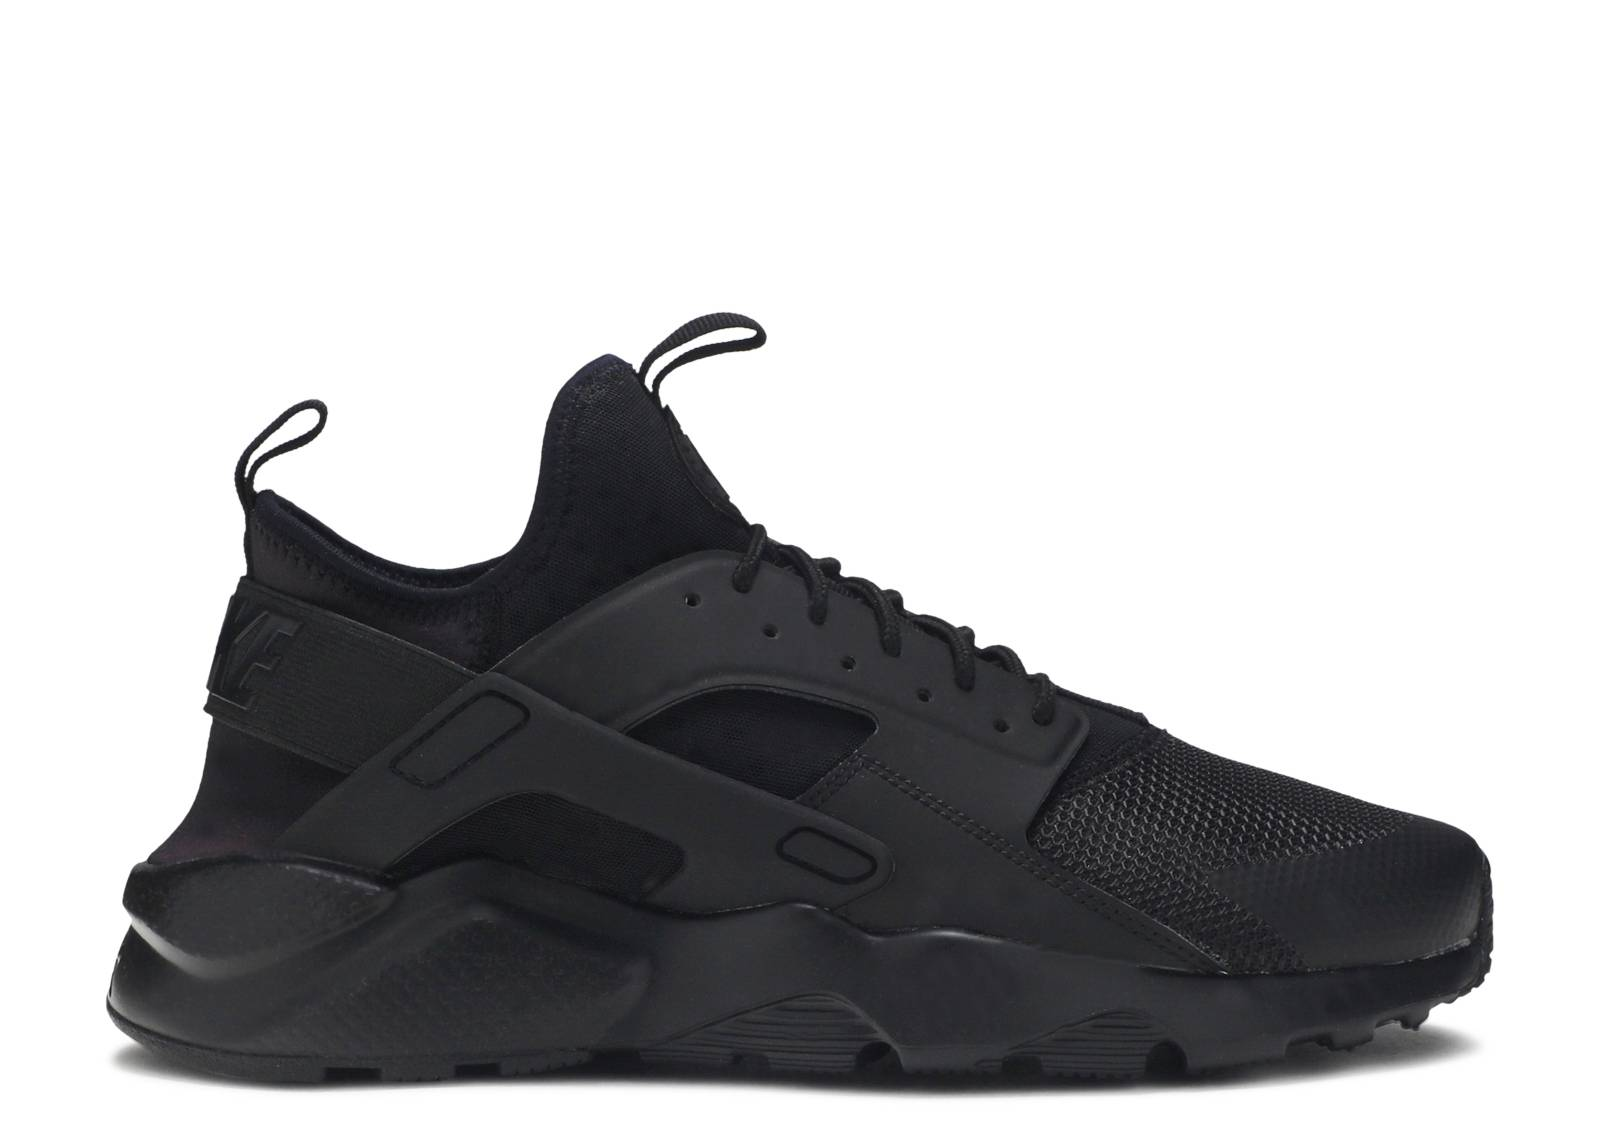 8c49fae766130 Nike Huaraches Shoes for Women   Men